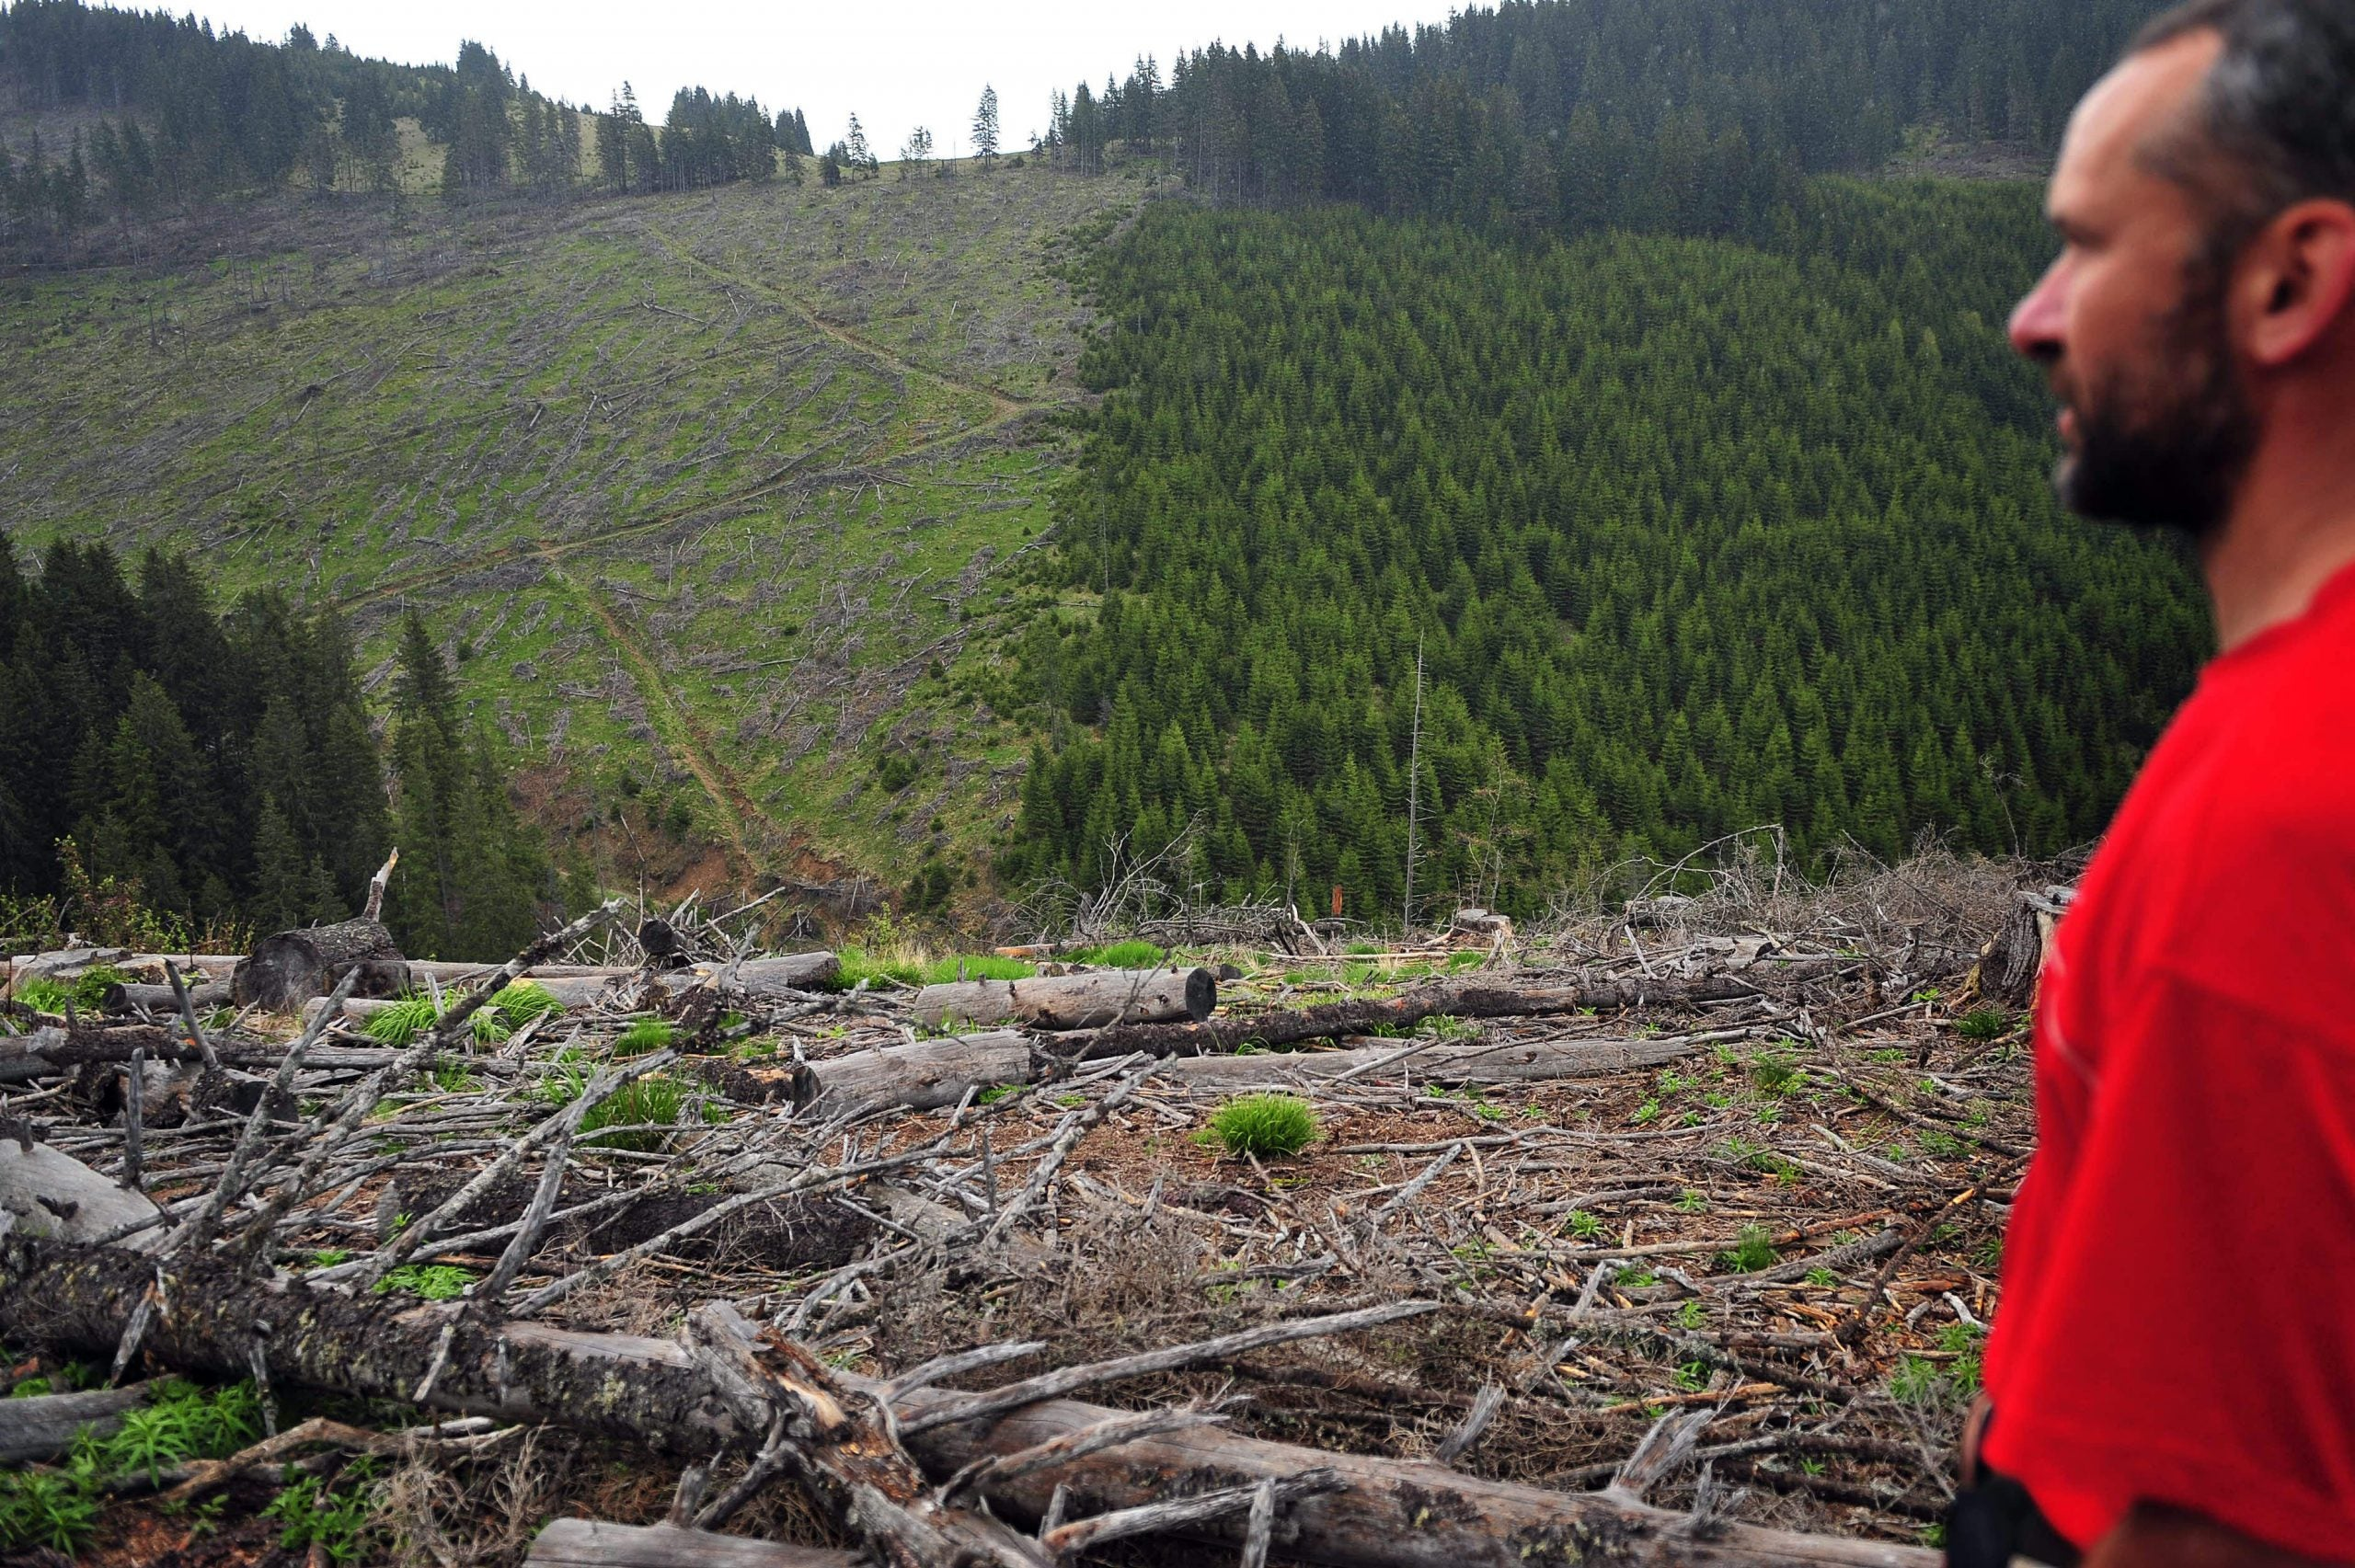 The race to save Romania's forests: how illegal loggers lay waste to the wilderness